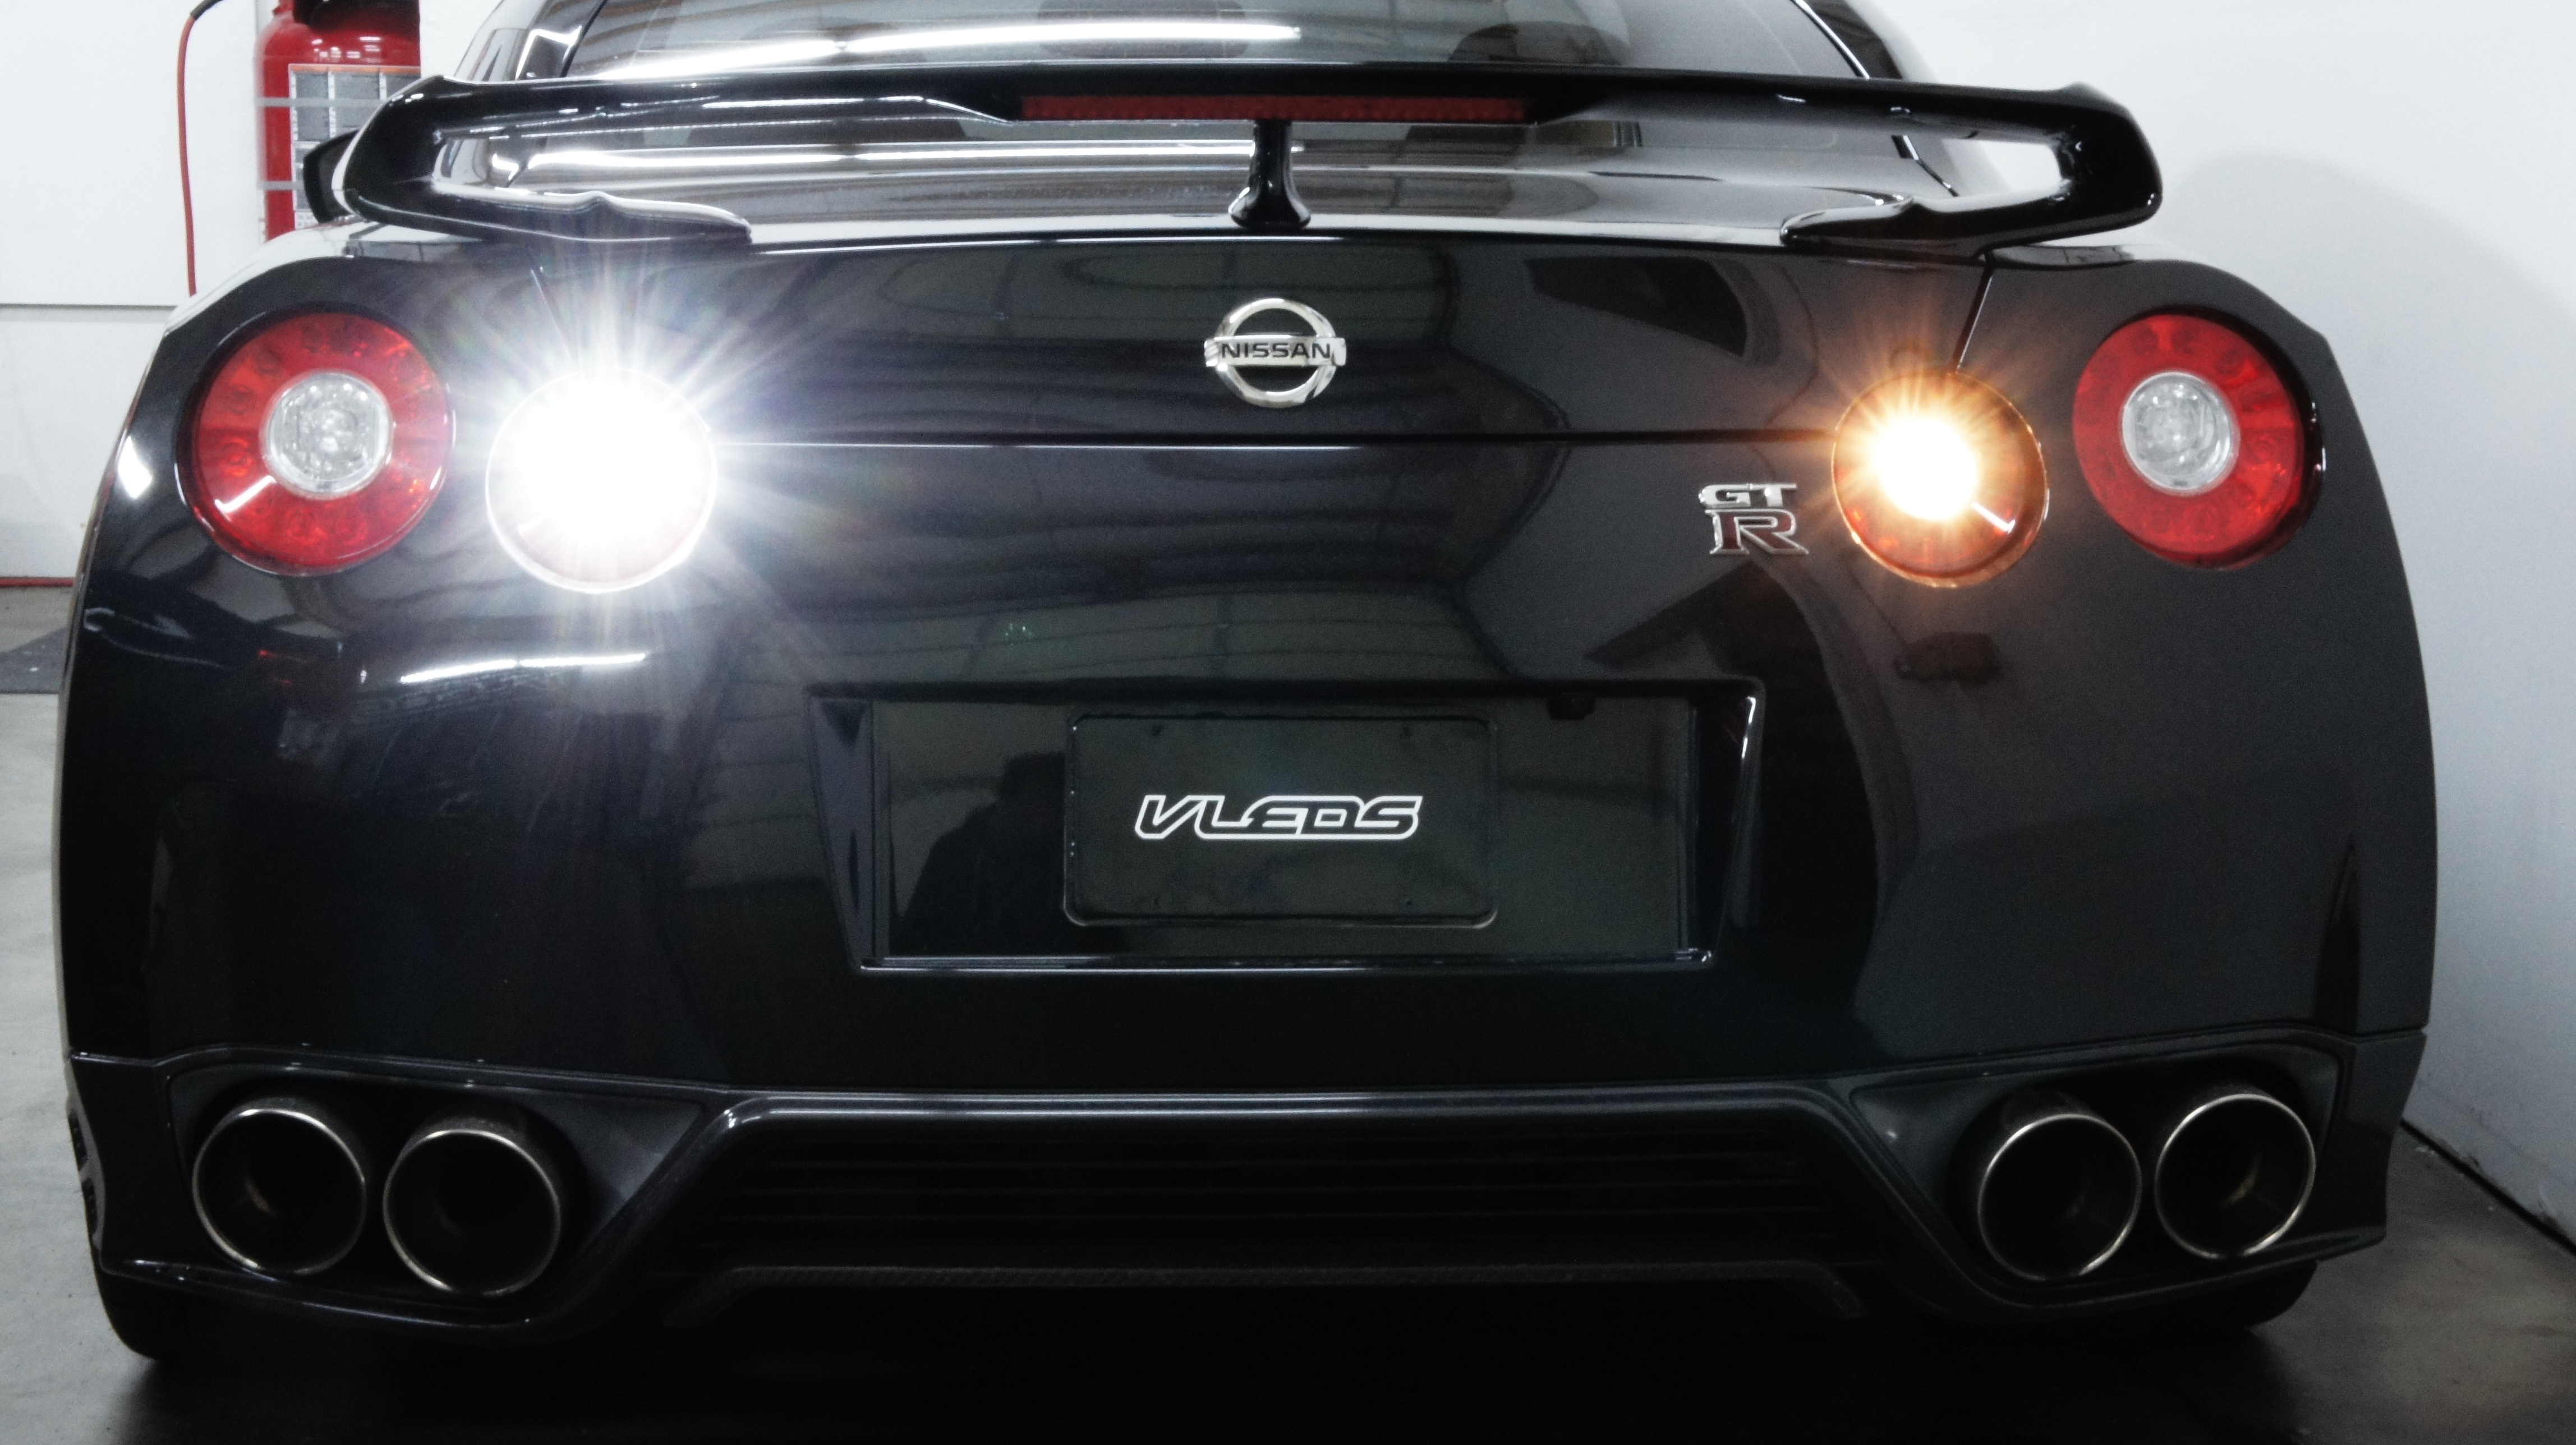 4.6 out of 5 stars 173. High Performance LED Reverse Lights - VLEDS Bulbs for Cars